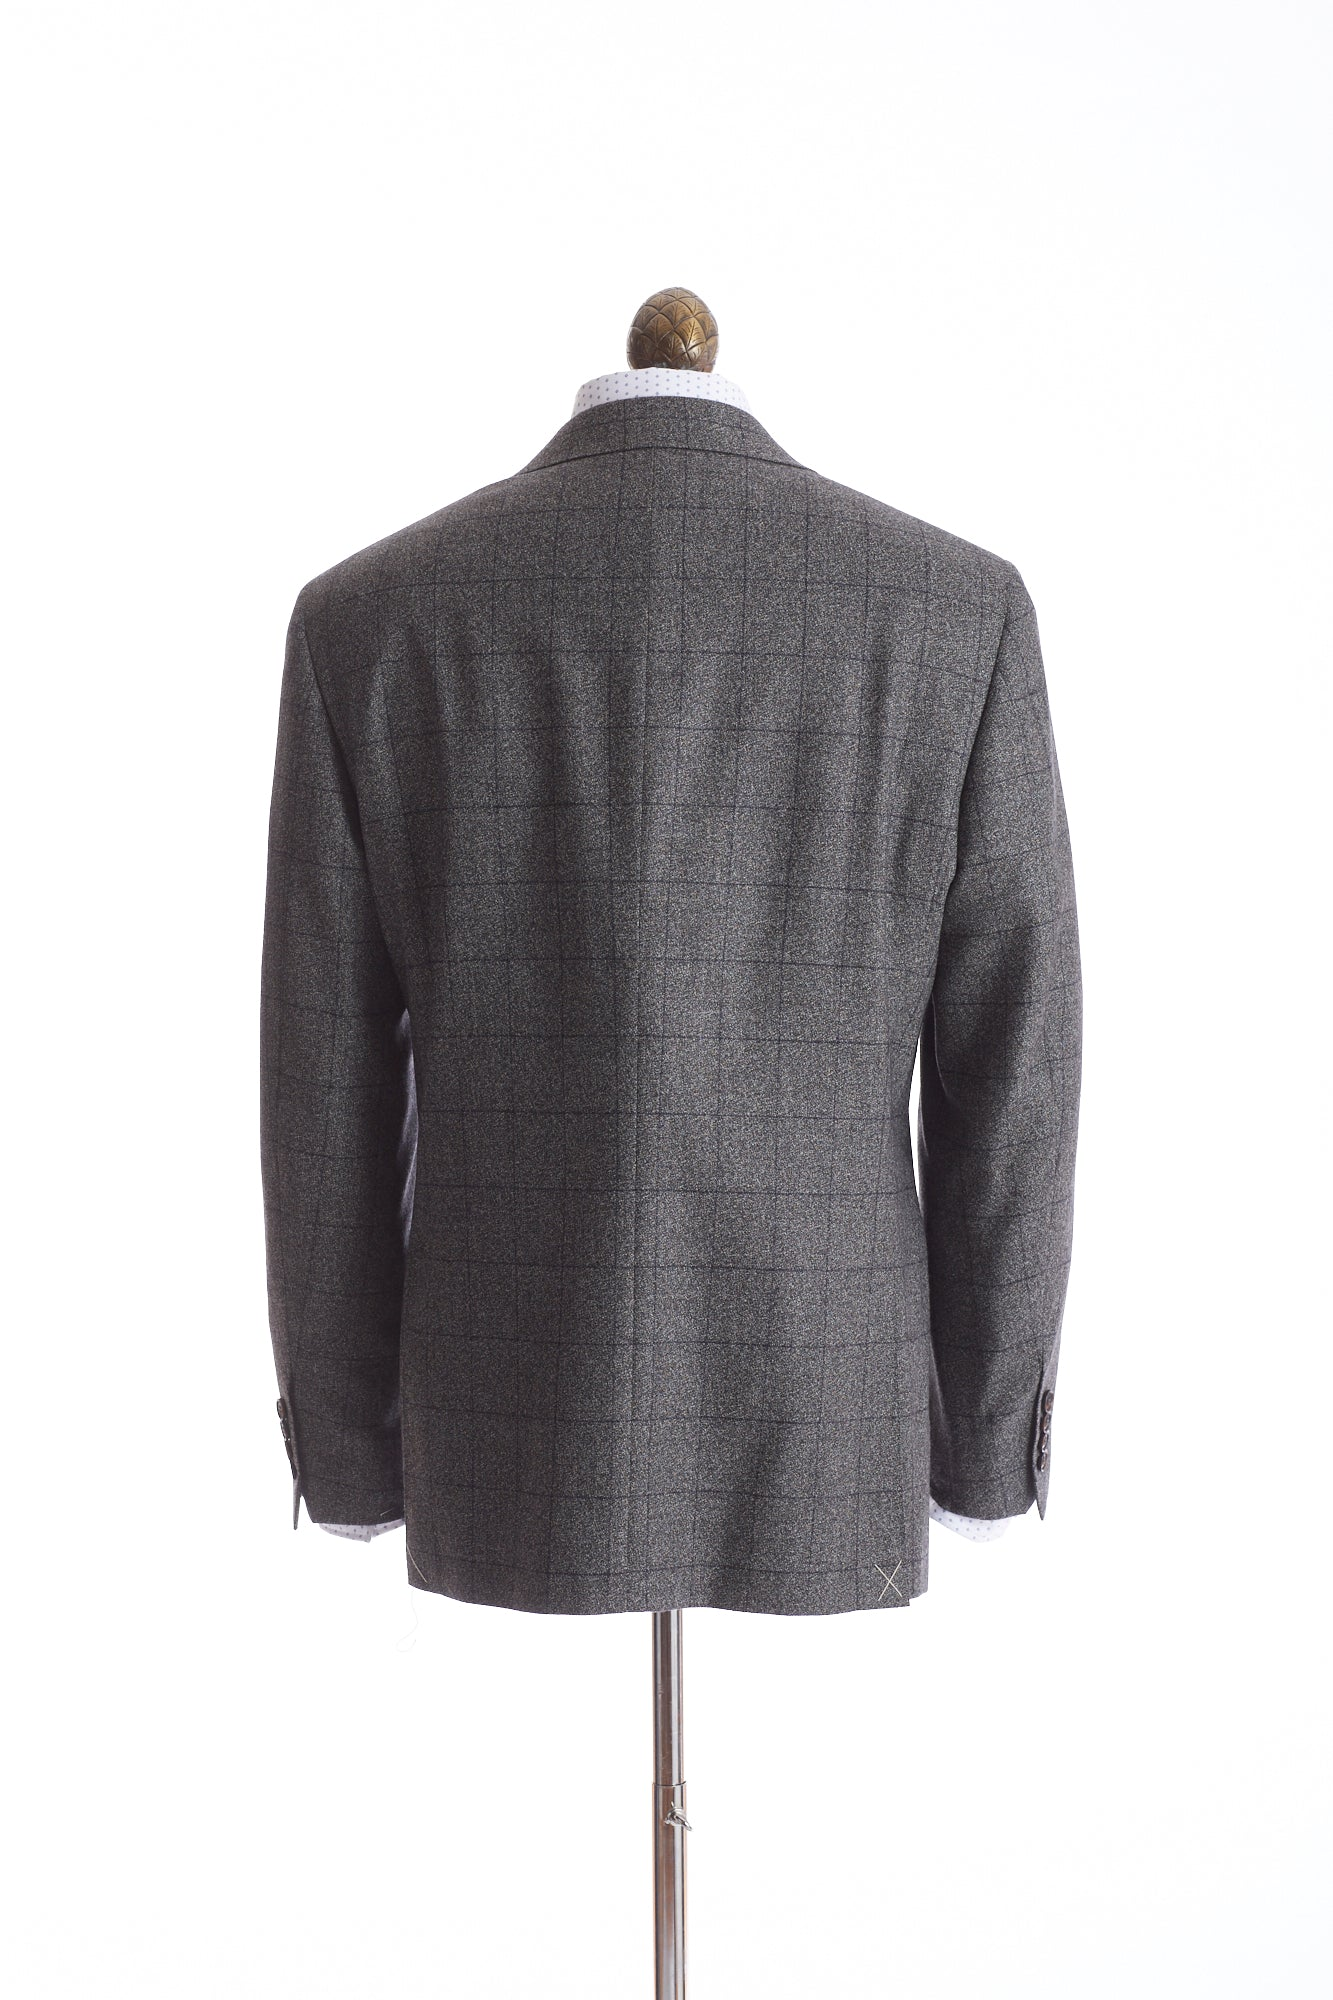 Canali Grey Windowpane Suit Back